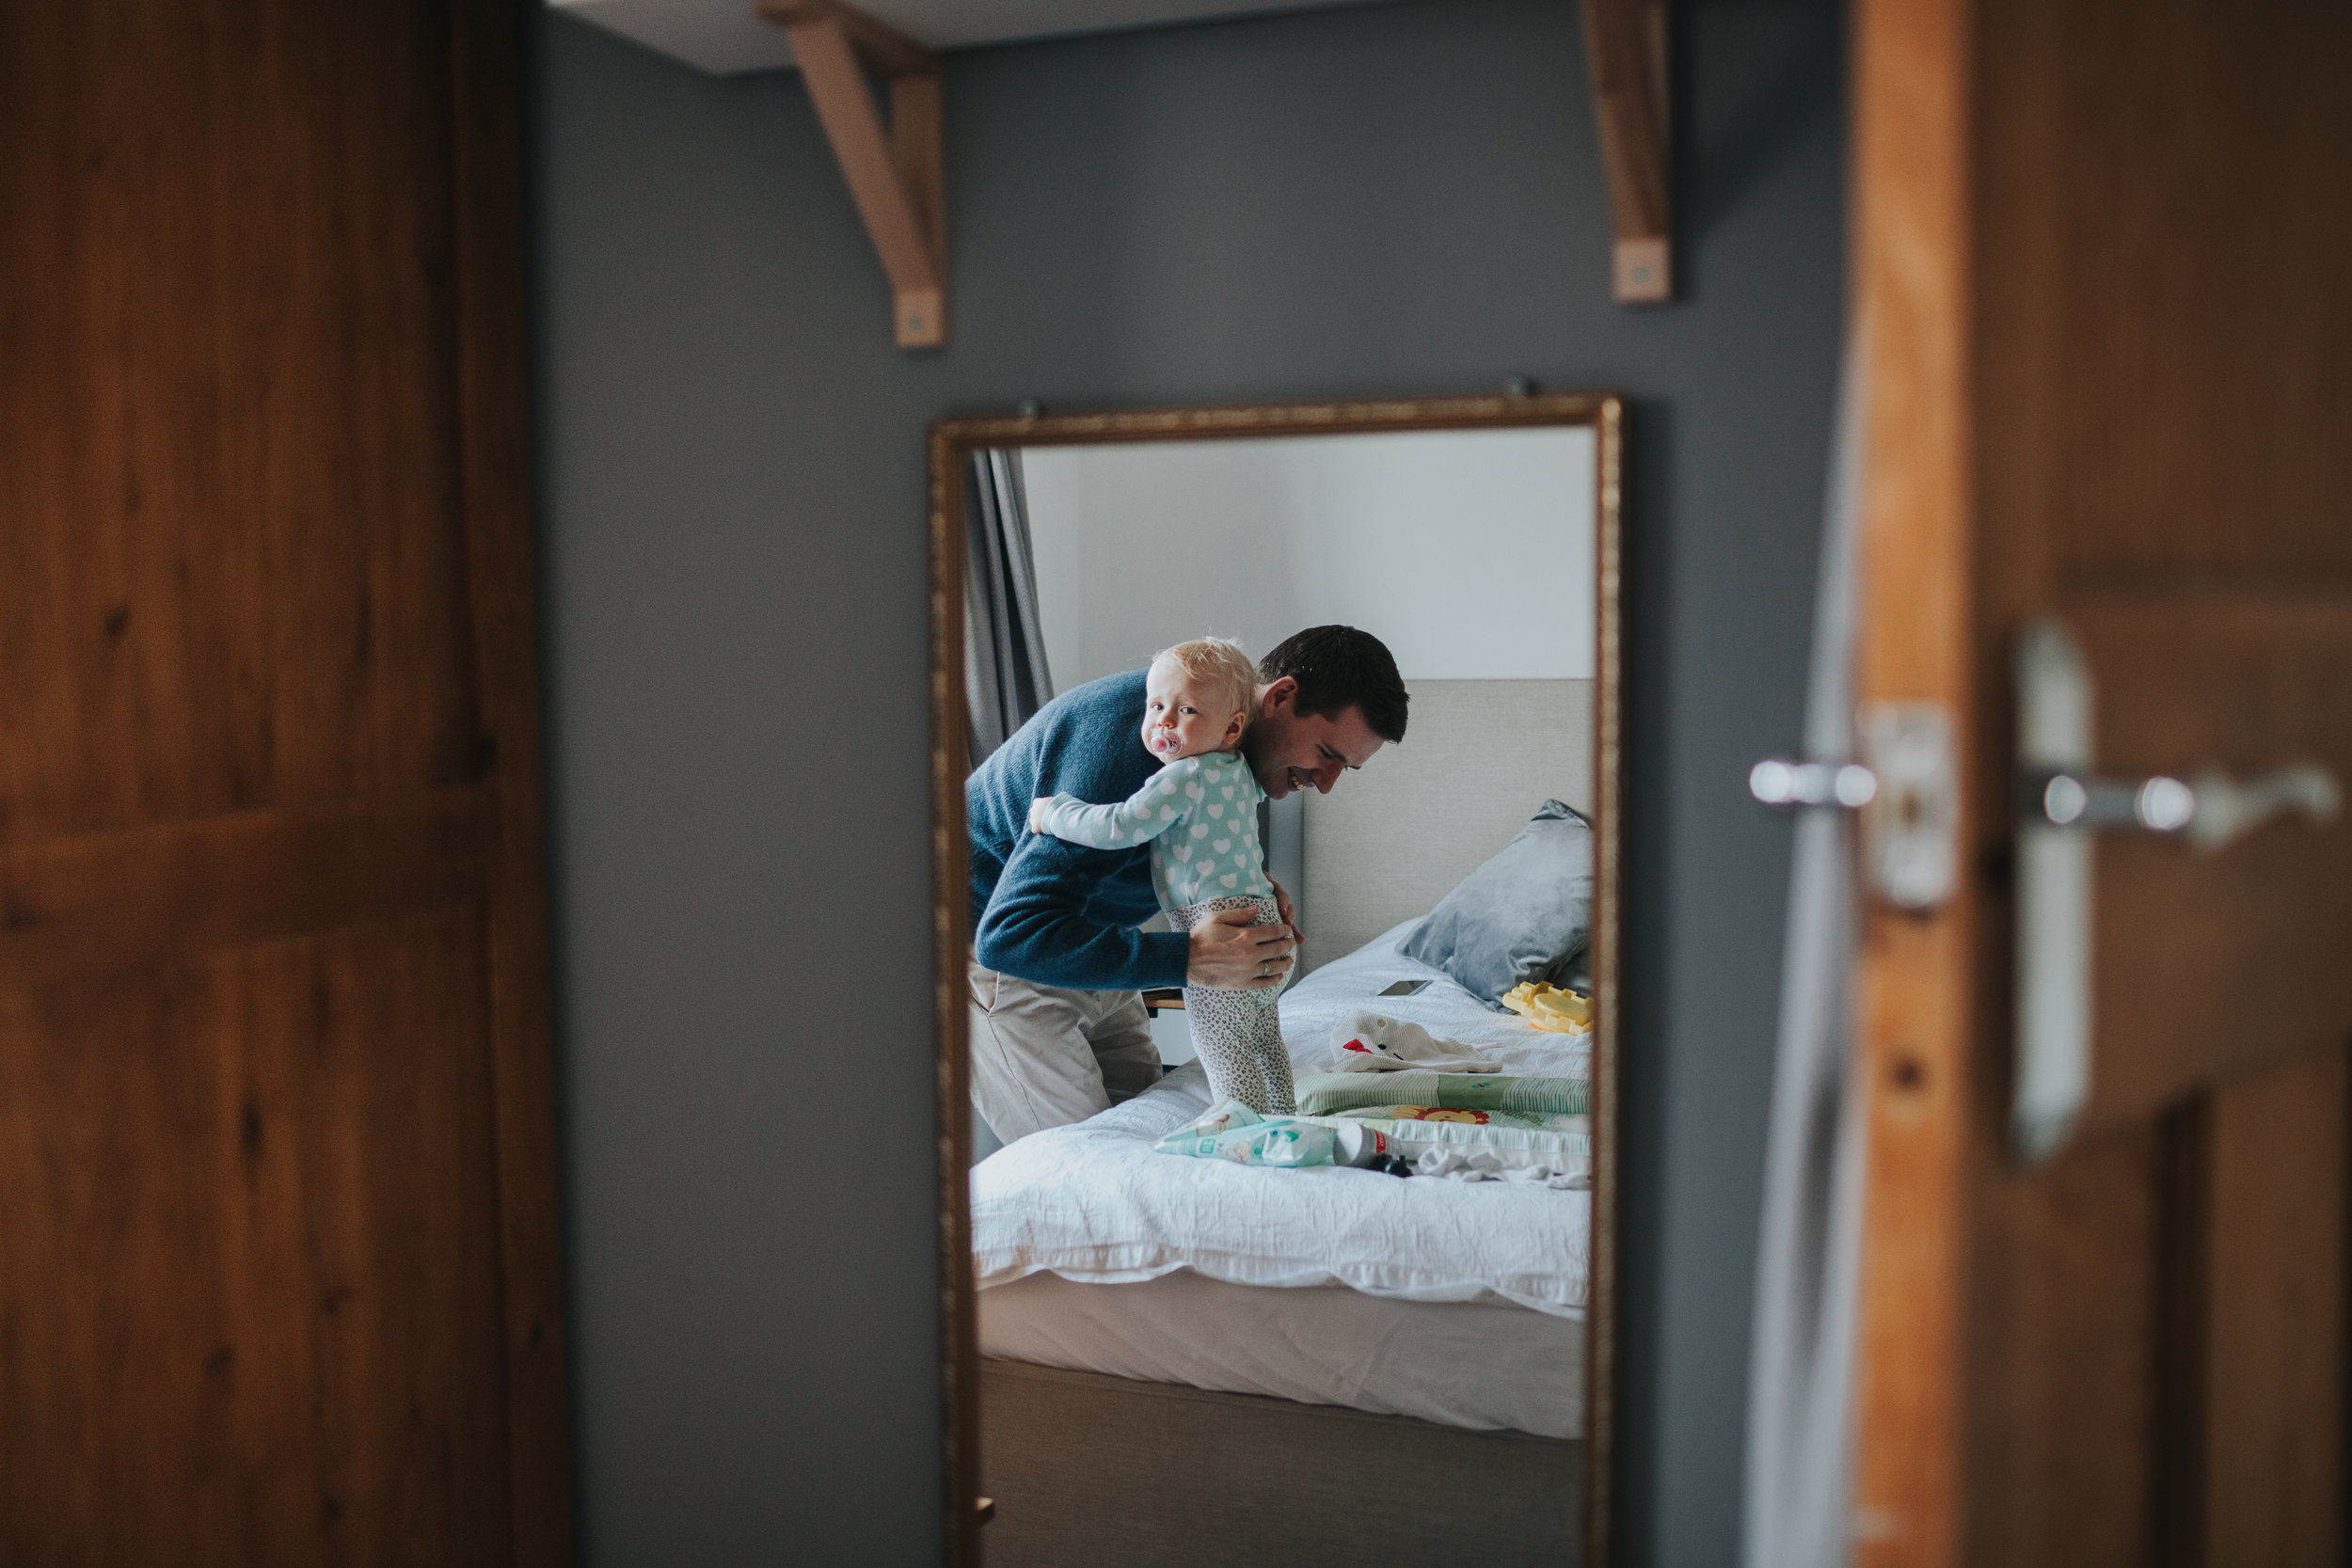 Reflection of father and daughter in mirror